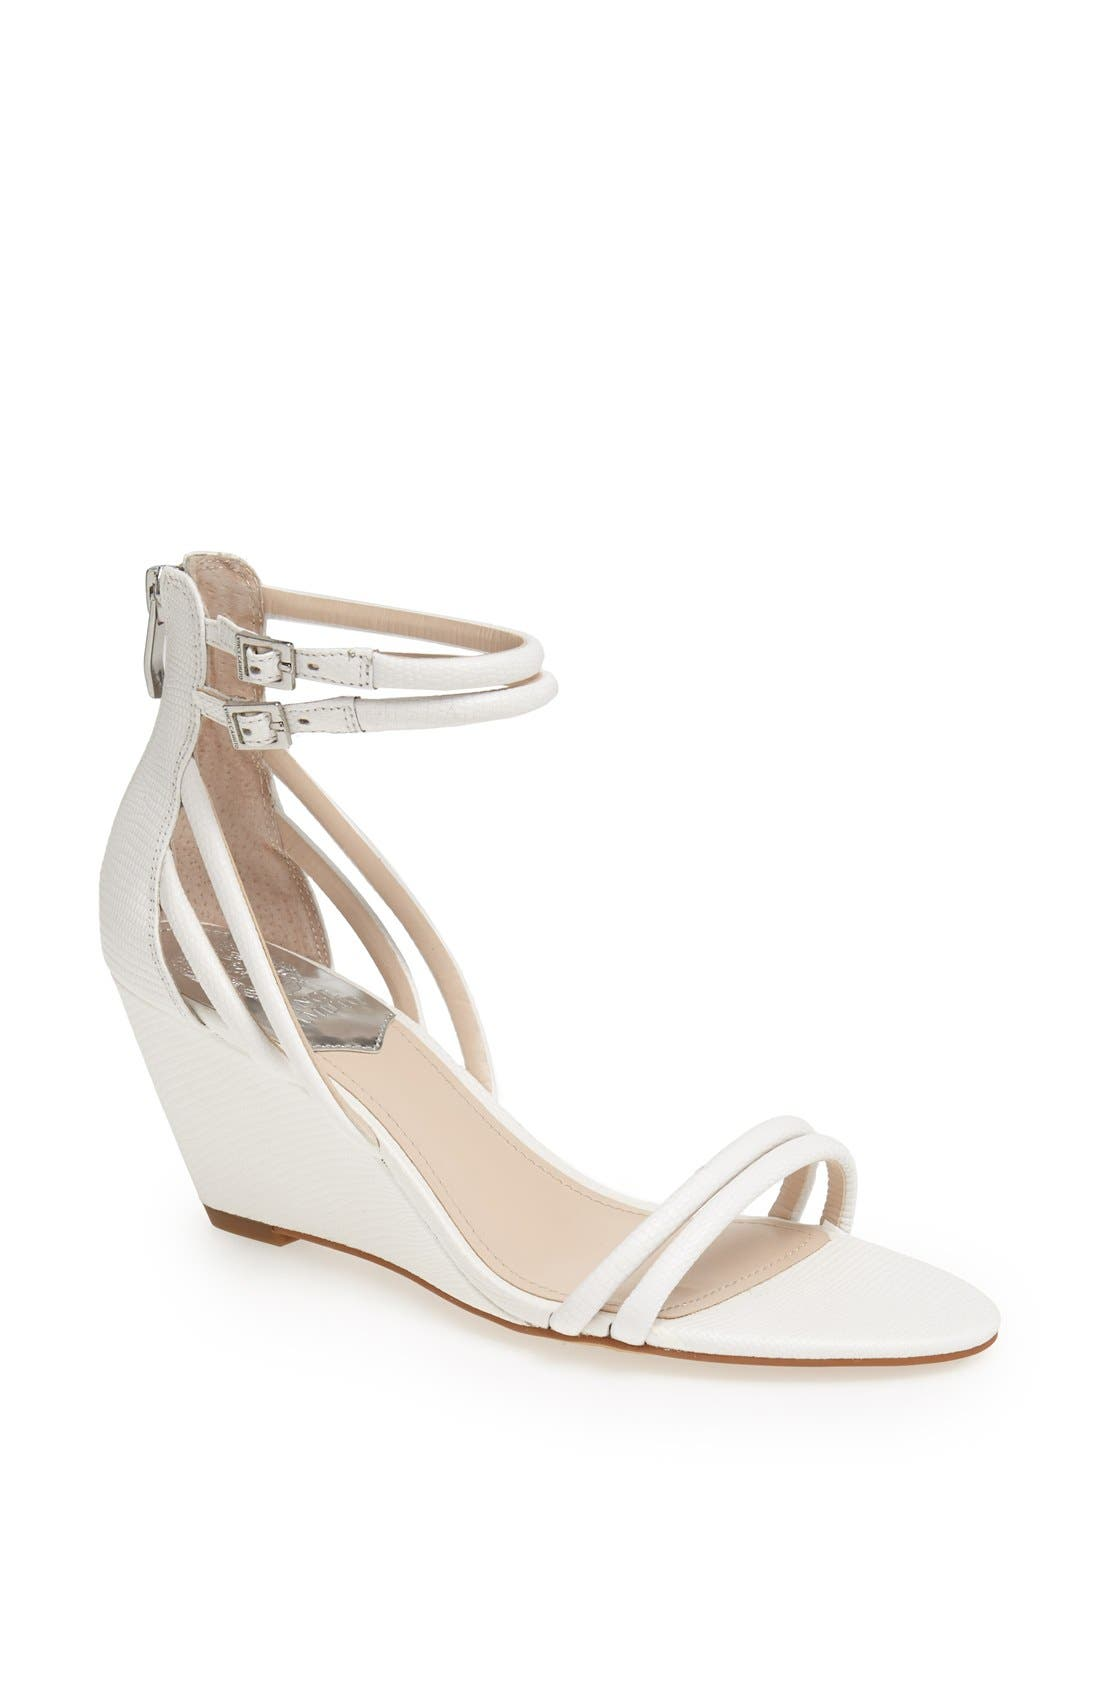 Alternate Image 1 Selected - Vince Camuto 'Wynter' Sandal